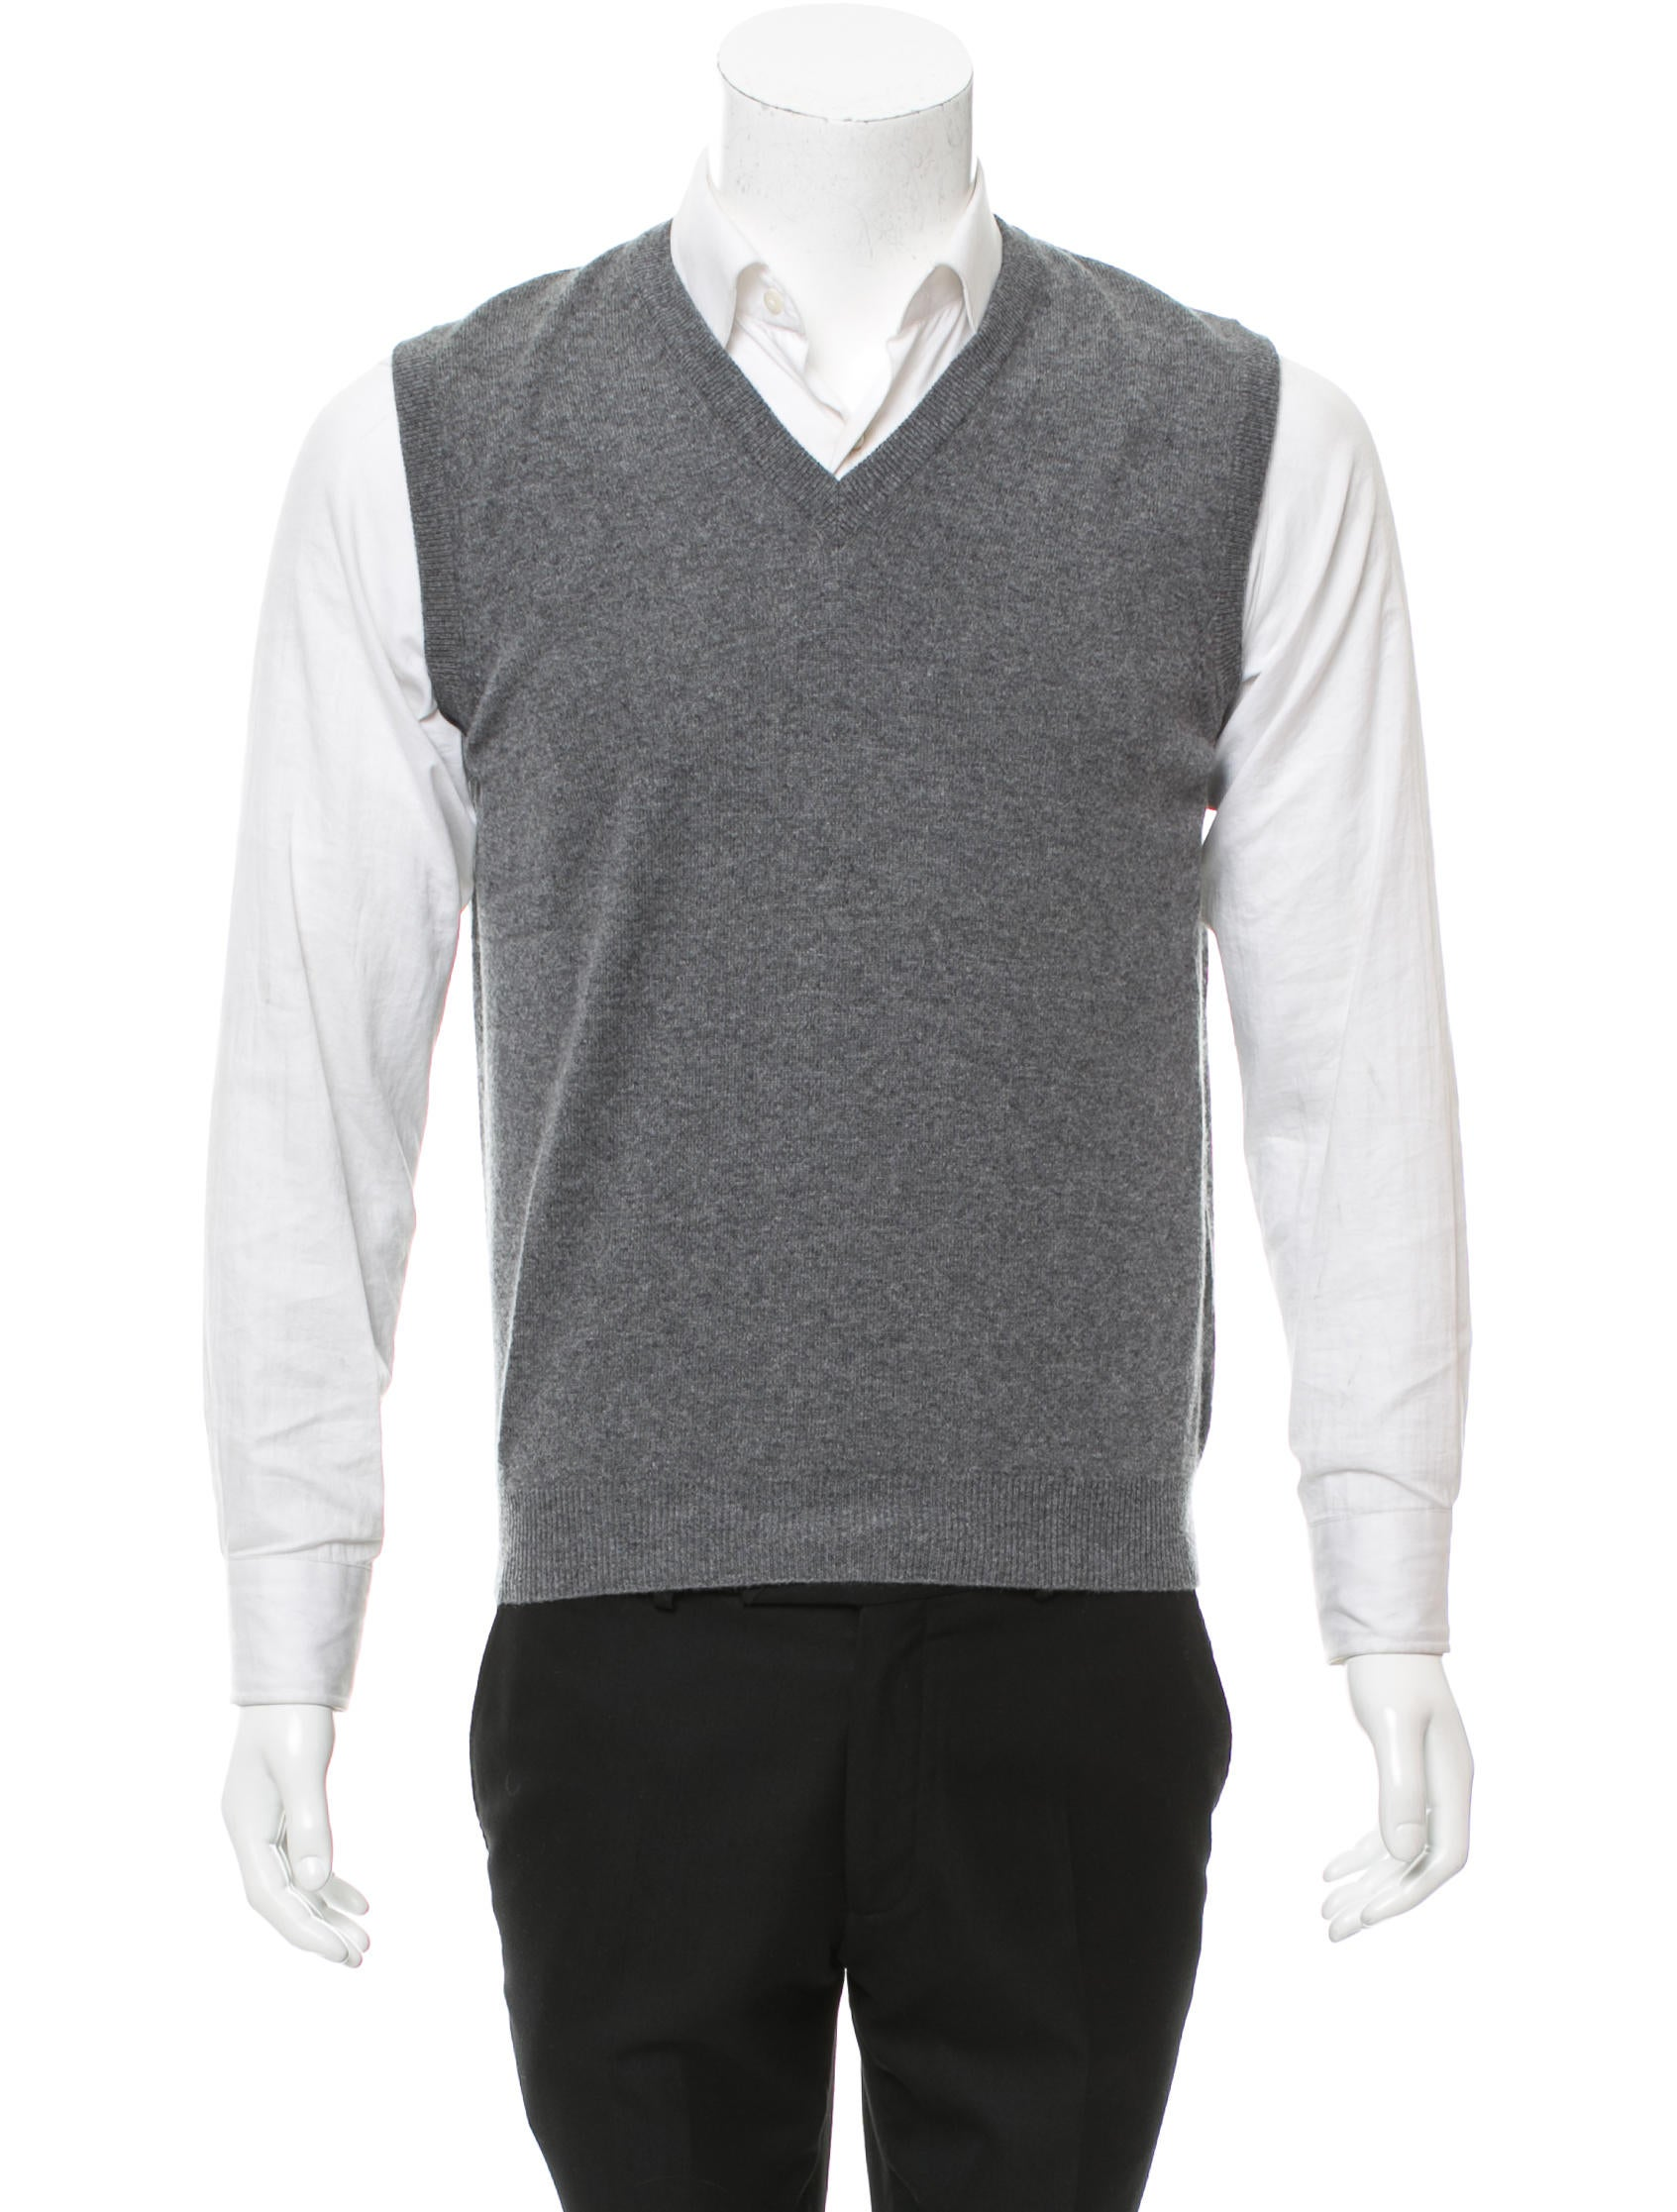 Shop for men's Cashmere Sweaters online at obmenvisitami.tk Browse the latest Sweaters styles for men from Jos. A Bank. FREE shipping on orders over $